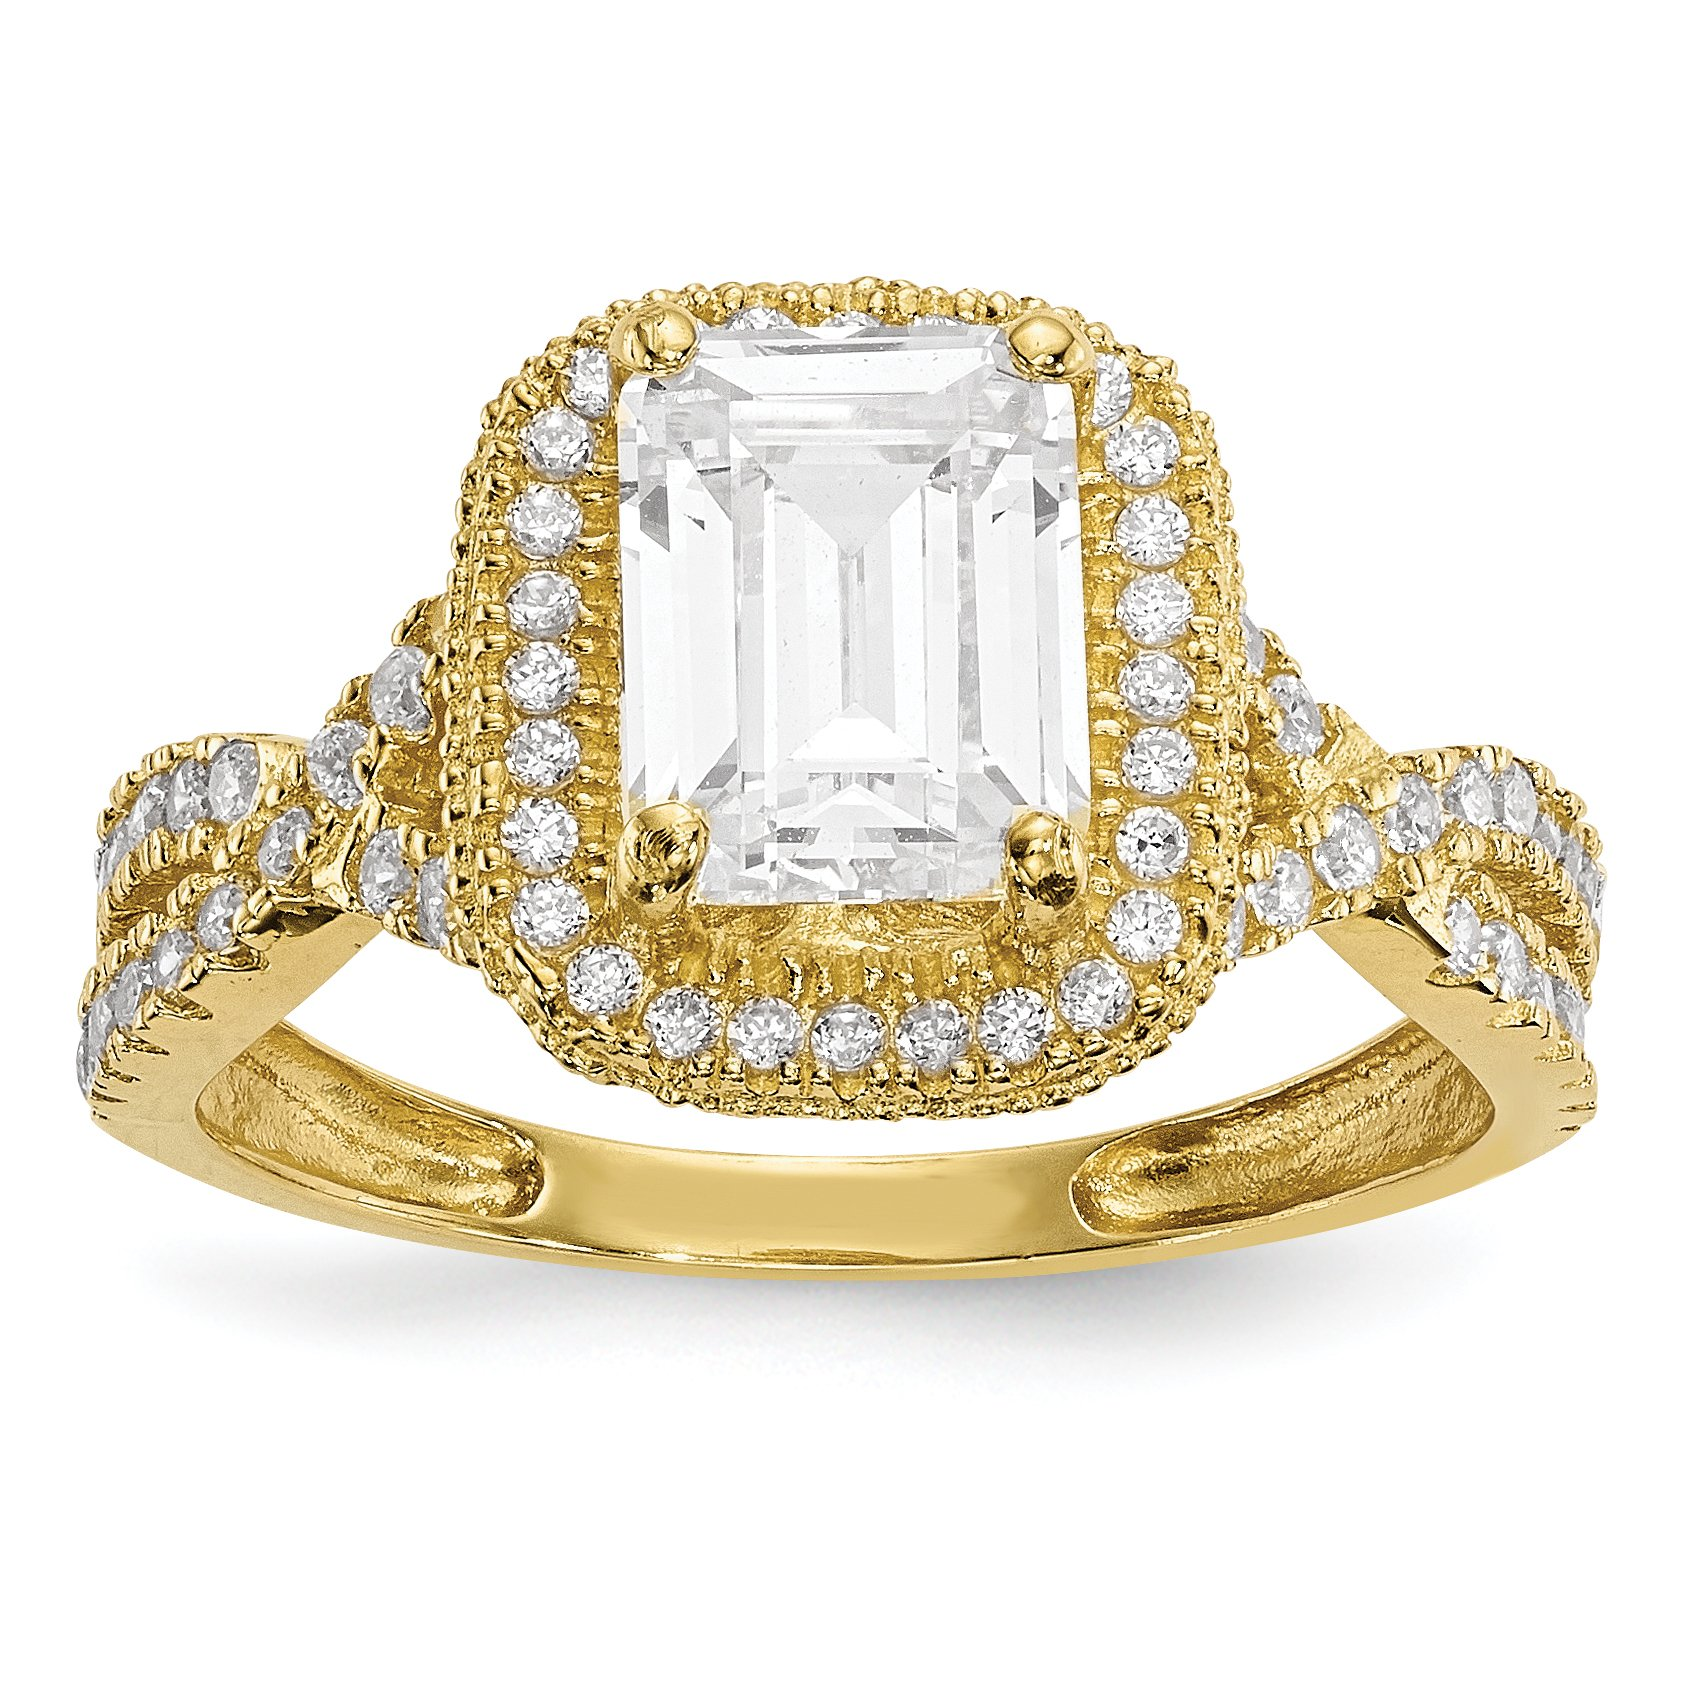 ICE CARATS 10k Yellow Gold Tiara Collection Cubic Zirconia Cz Band Ring Size 7.00 Yc Fine Jewelry Gift Set For Women Heart